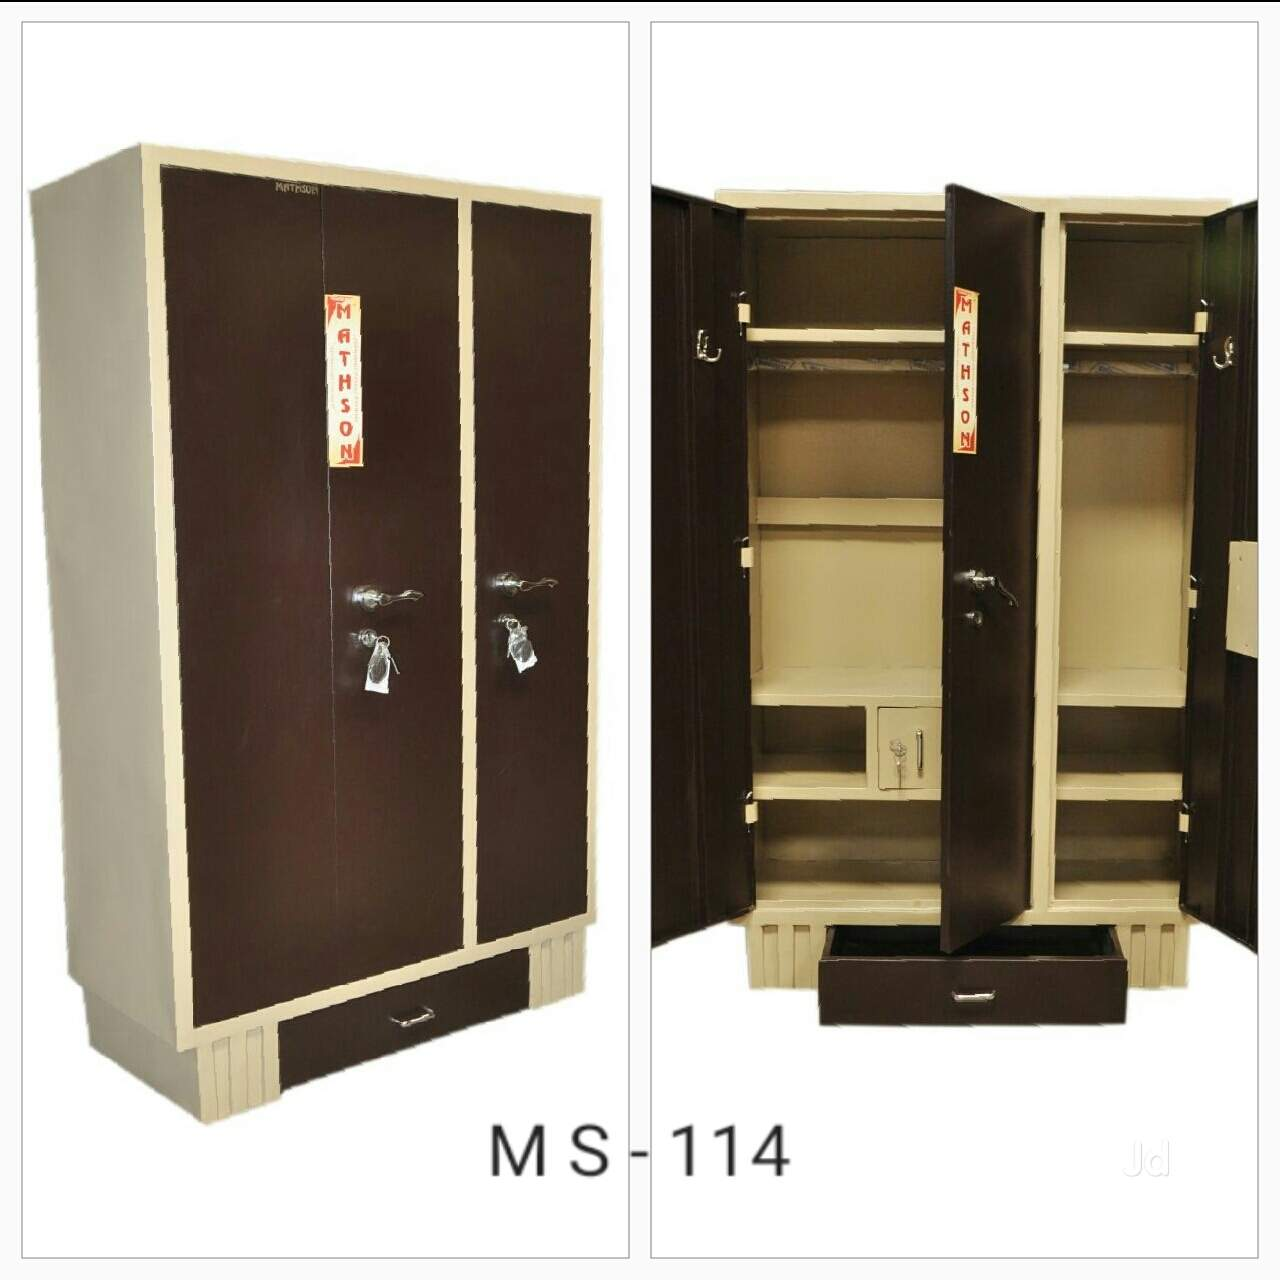 Top Slotted Angle Rack Dealers in Chandigarh - Justdial